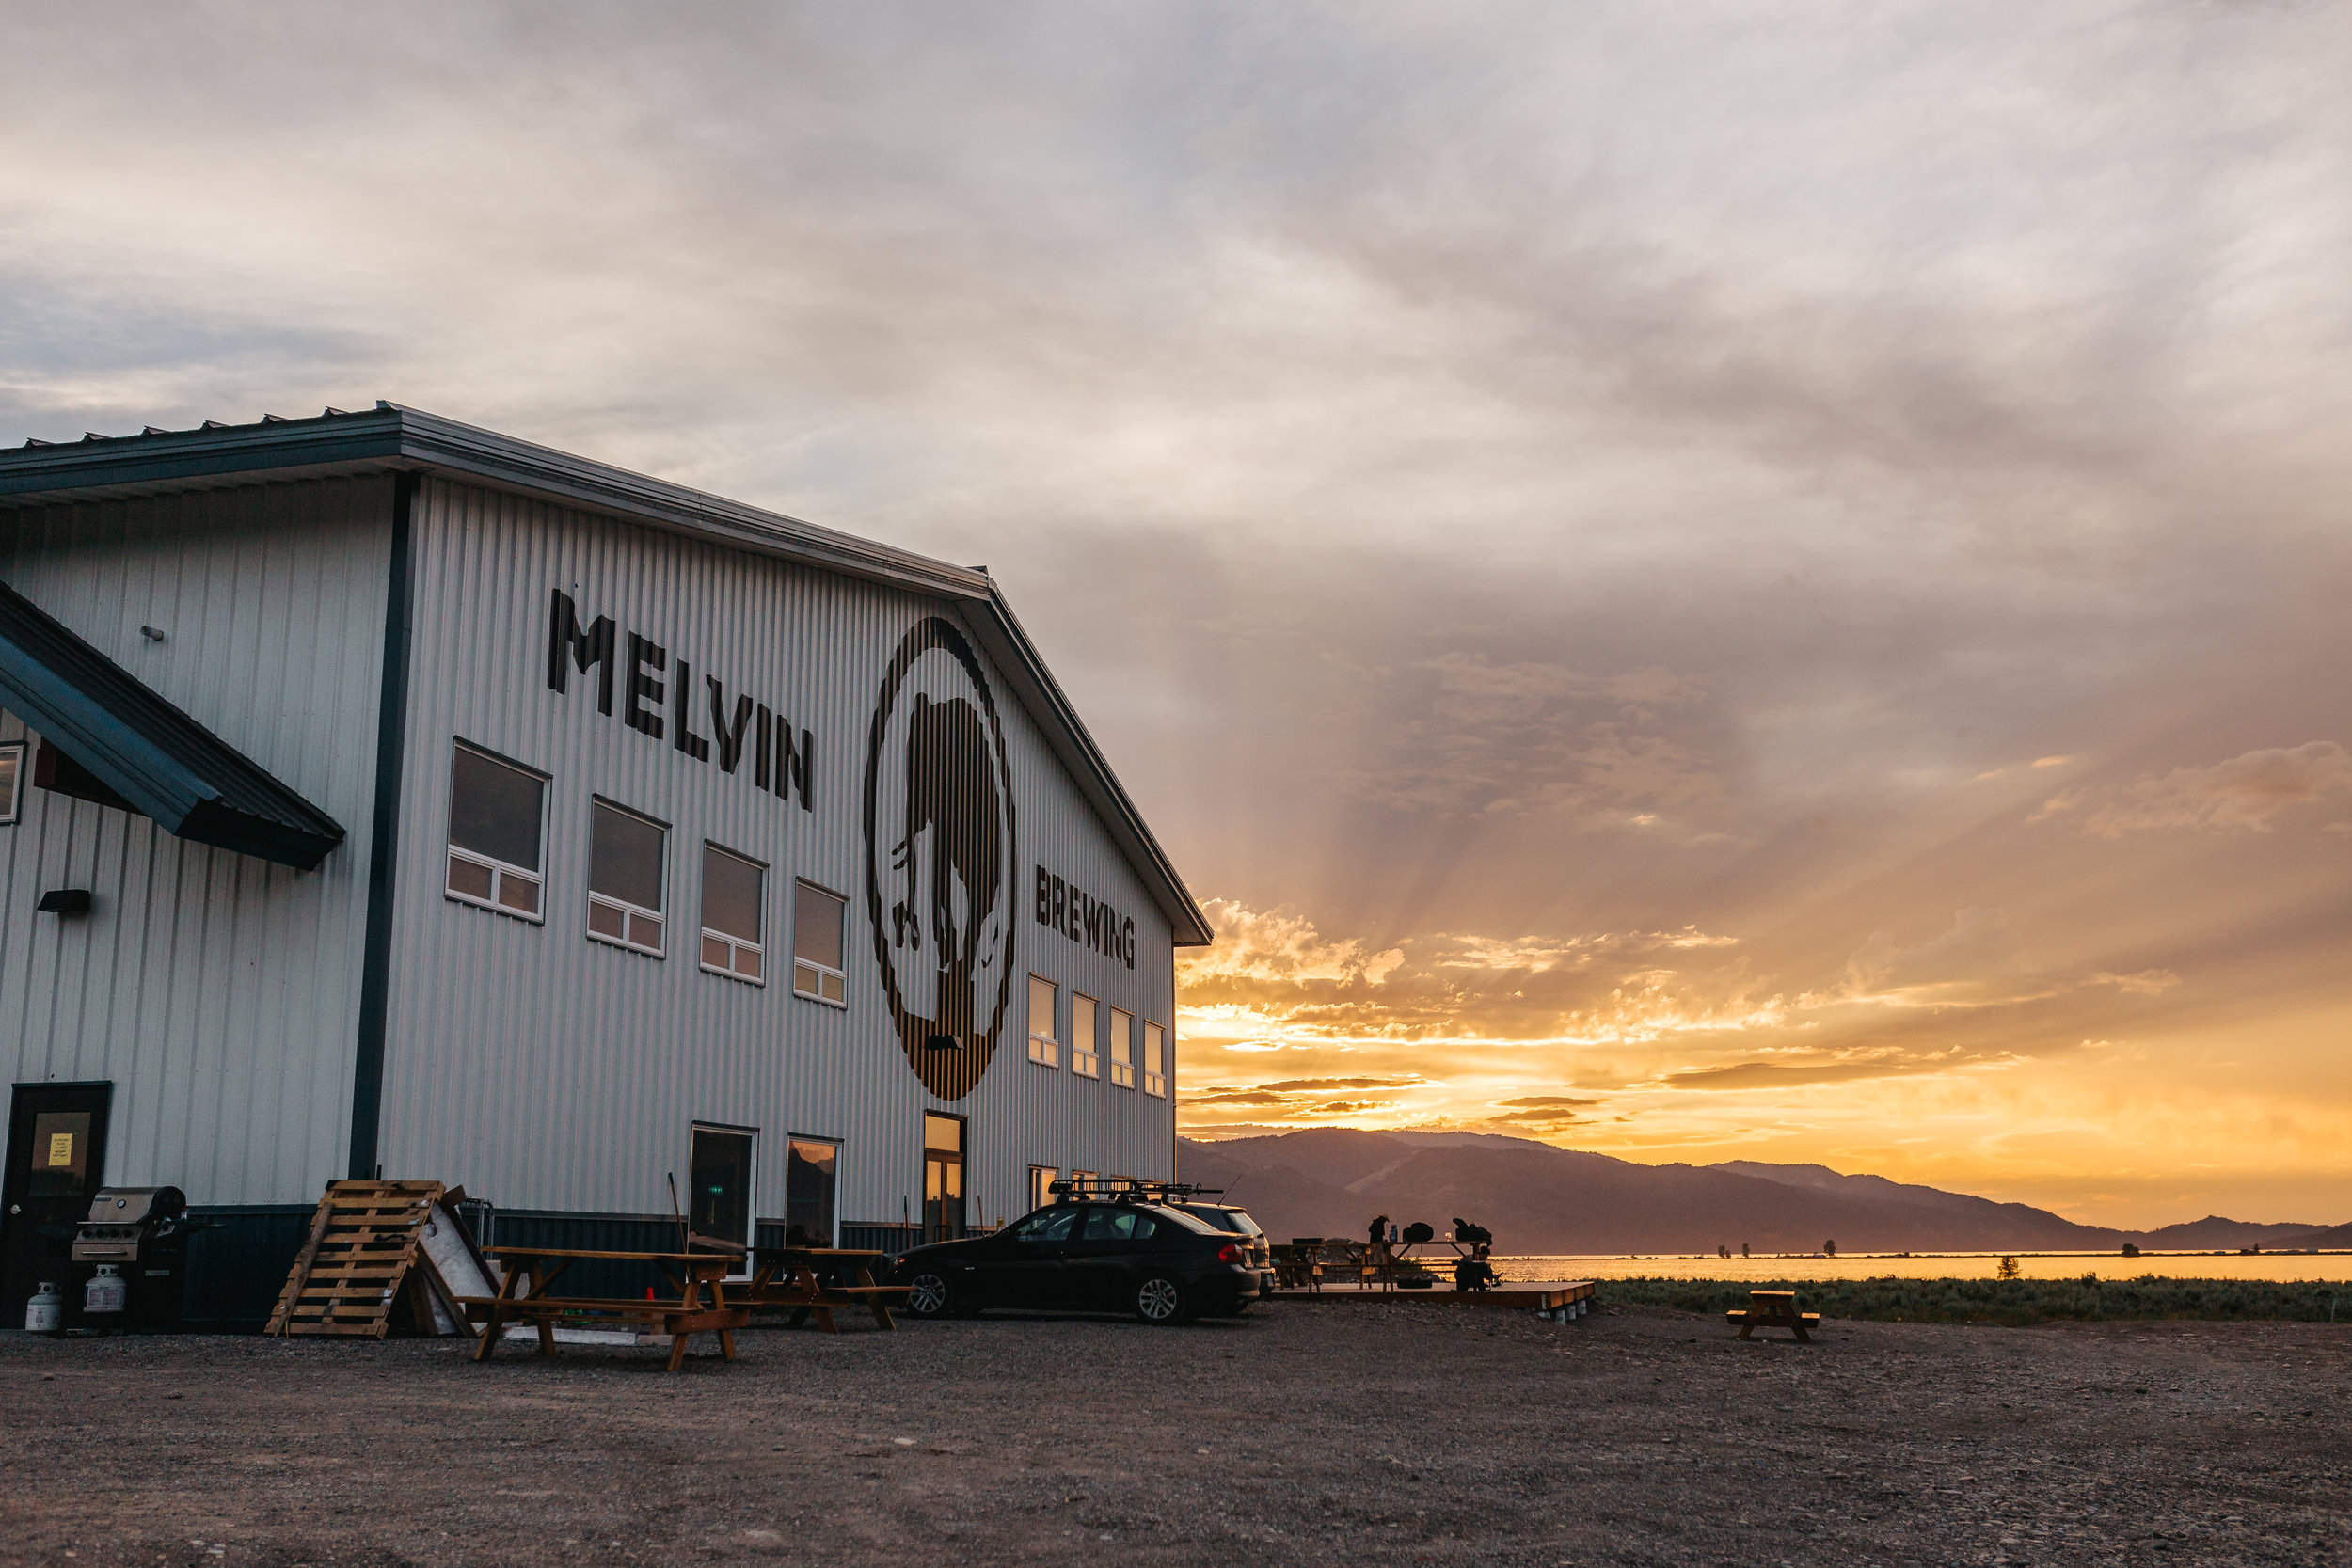 Sunset at Melvin Brewing back in Alpine, Wyoming.